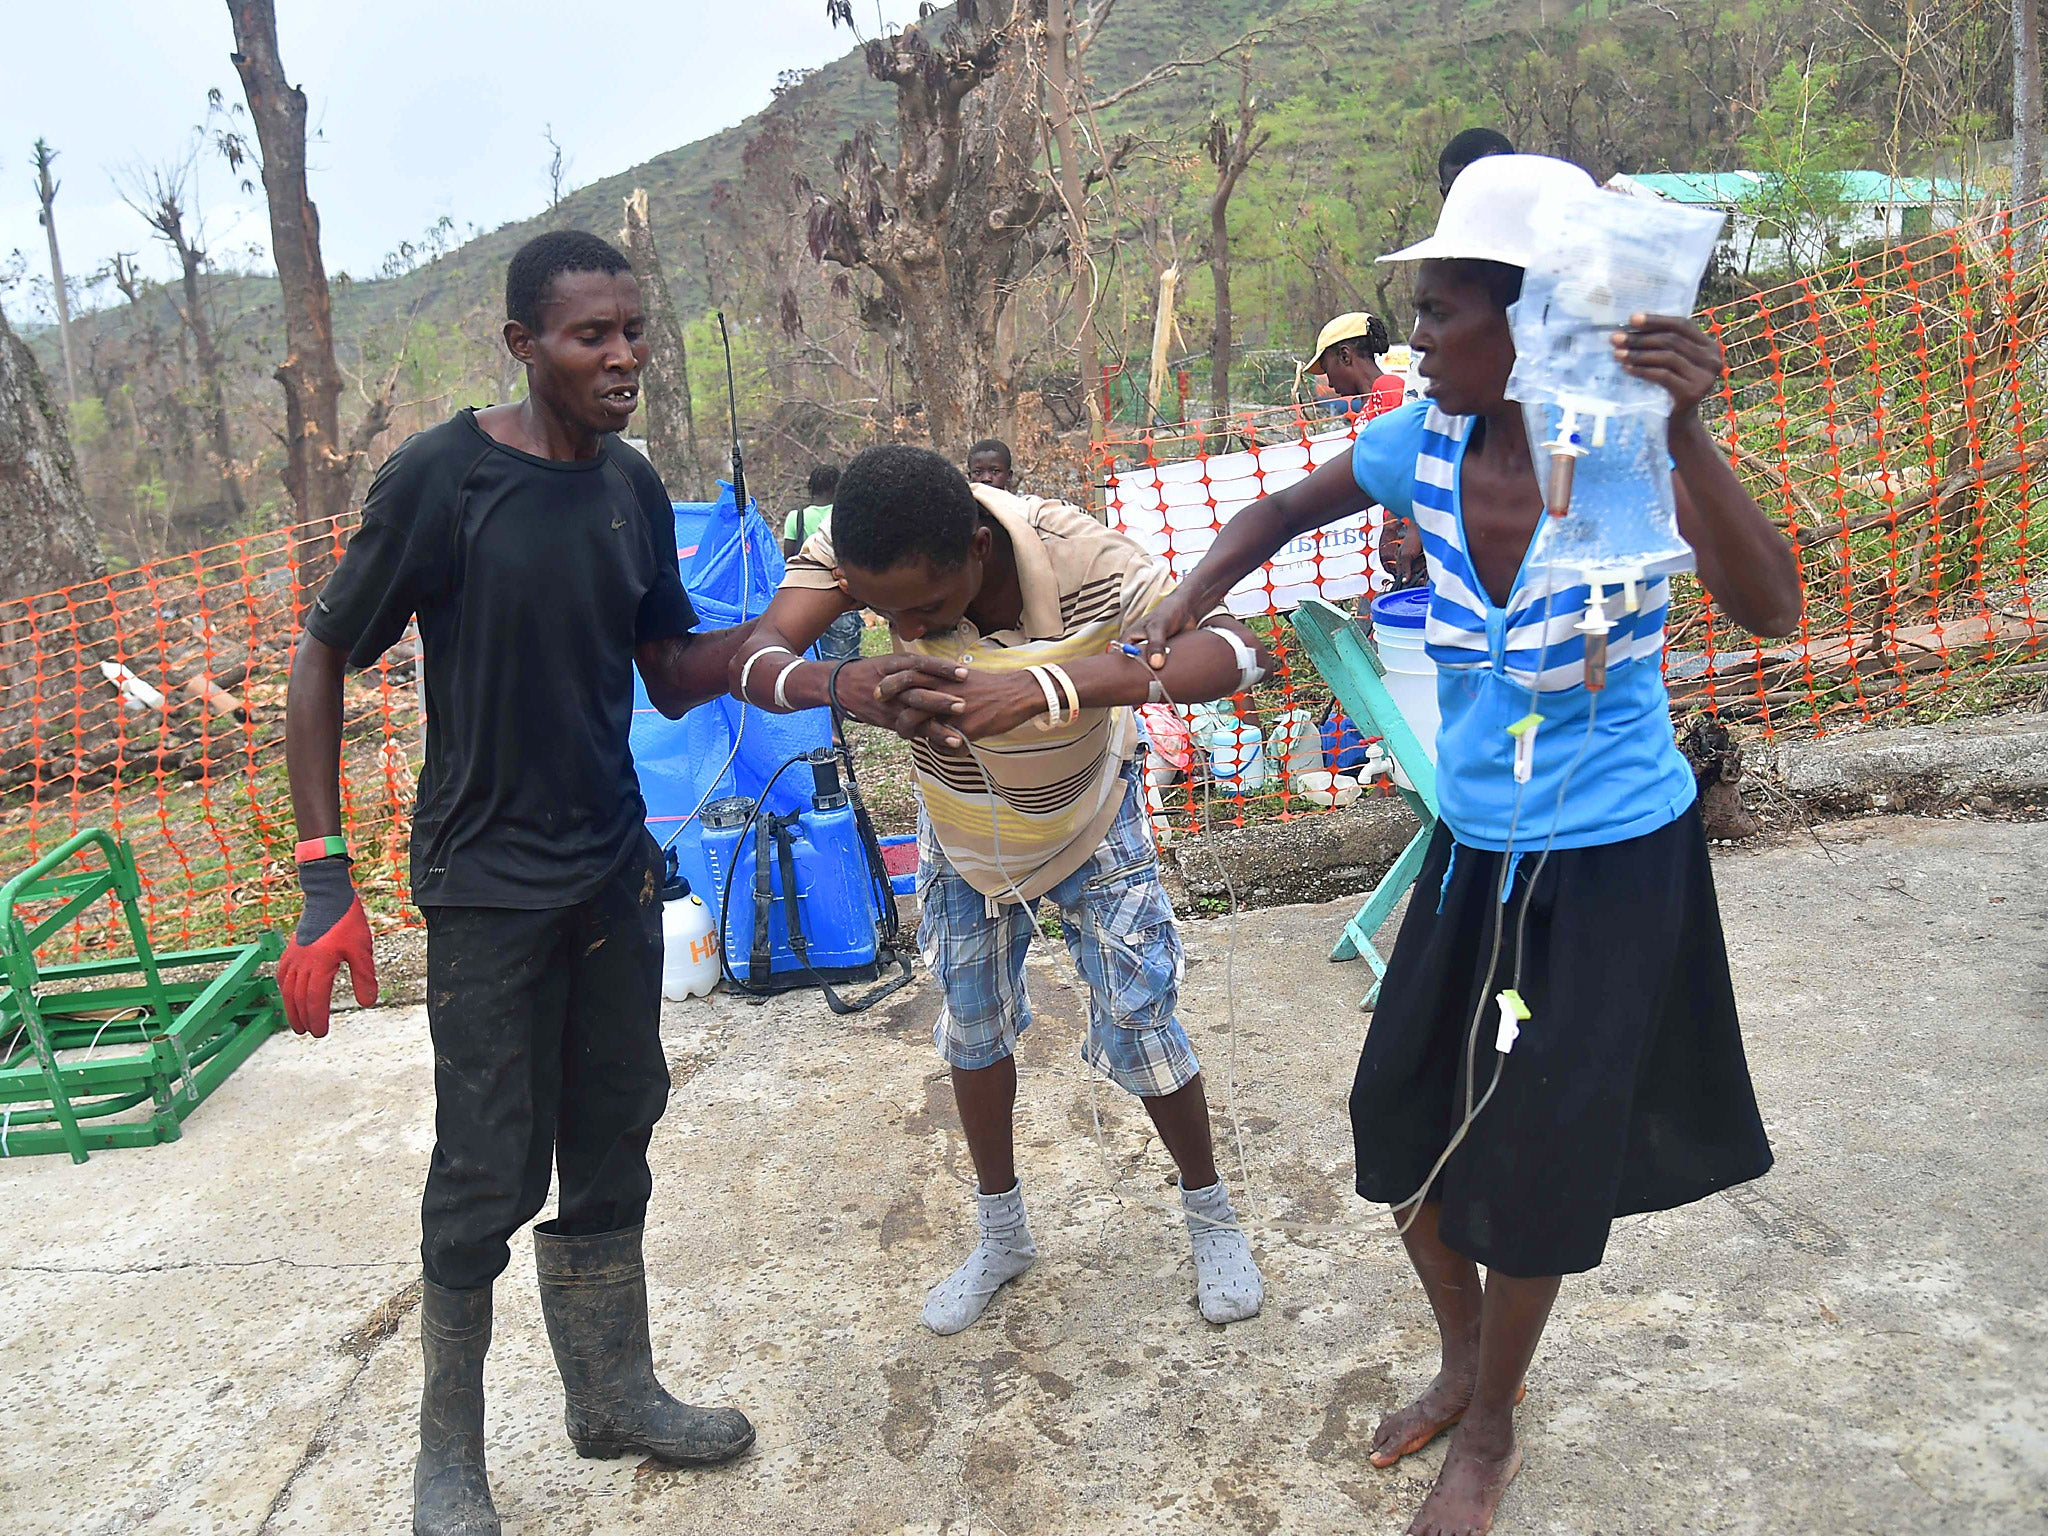 Haiti Faces Cholera Spike Amid Woeful International Response To Hurricane Matthew Aftermath Un